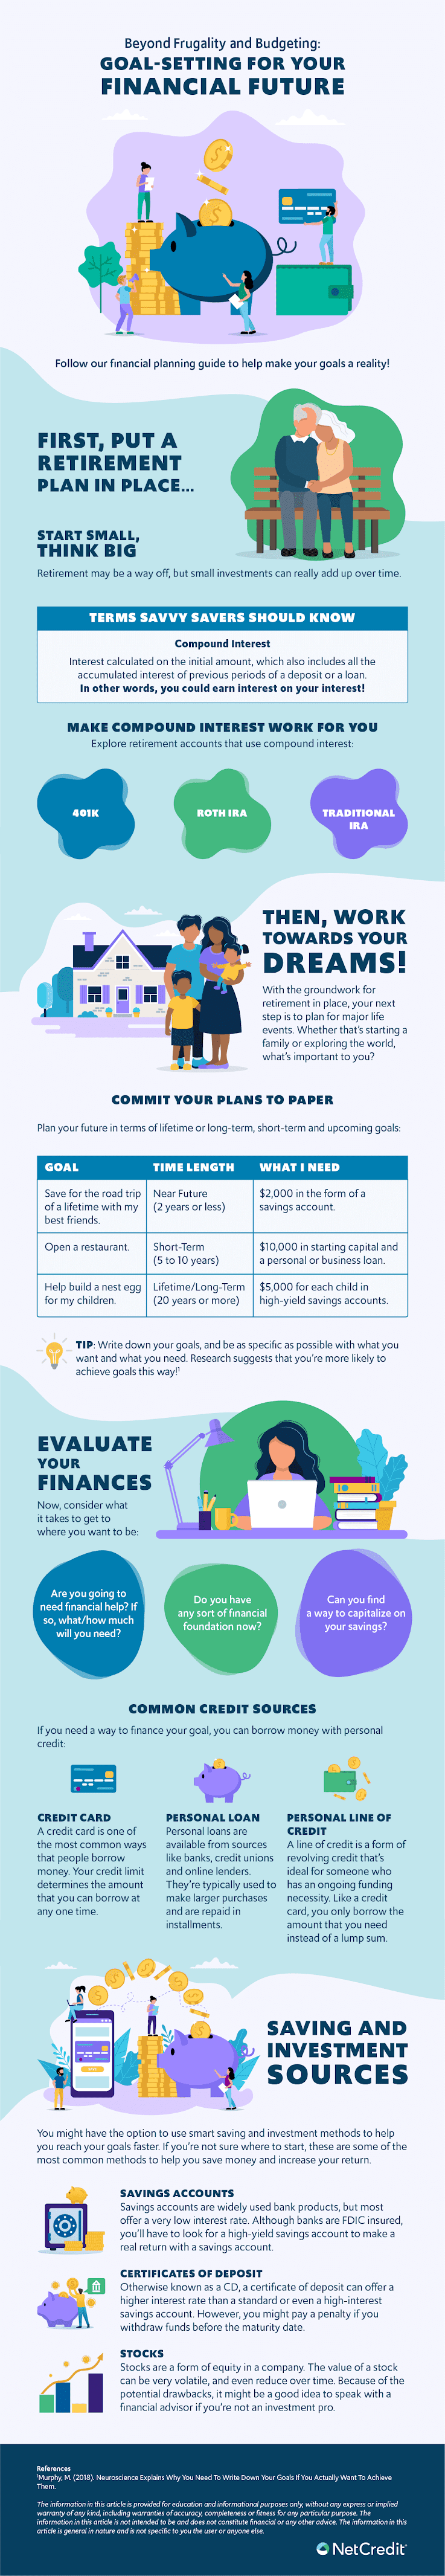 How to Prioritize Financial Goals for the Life You Want #infographic